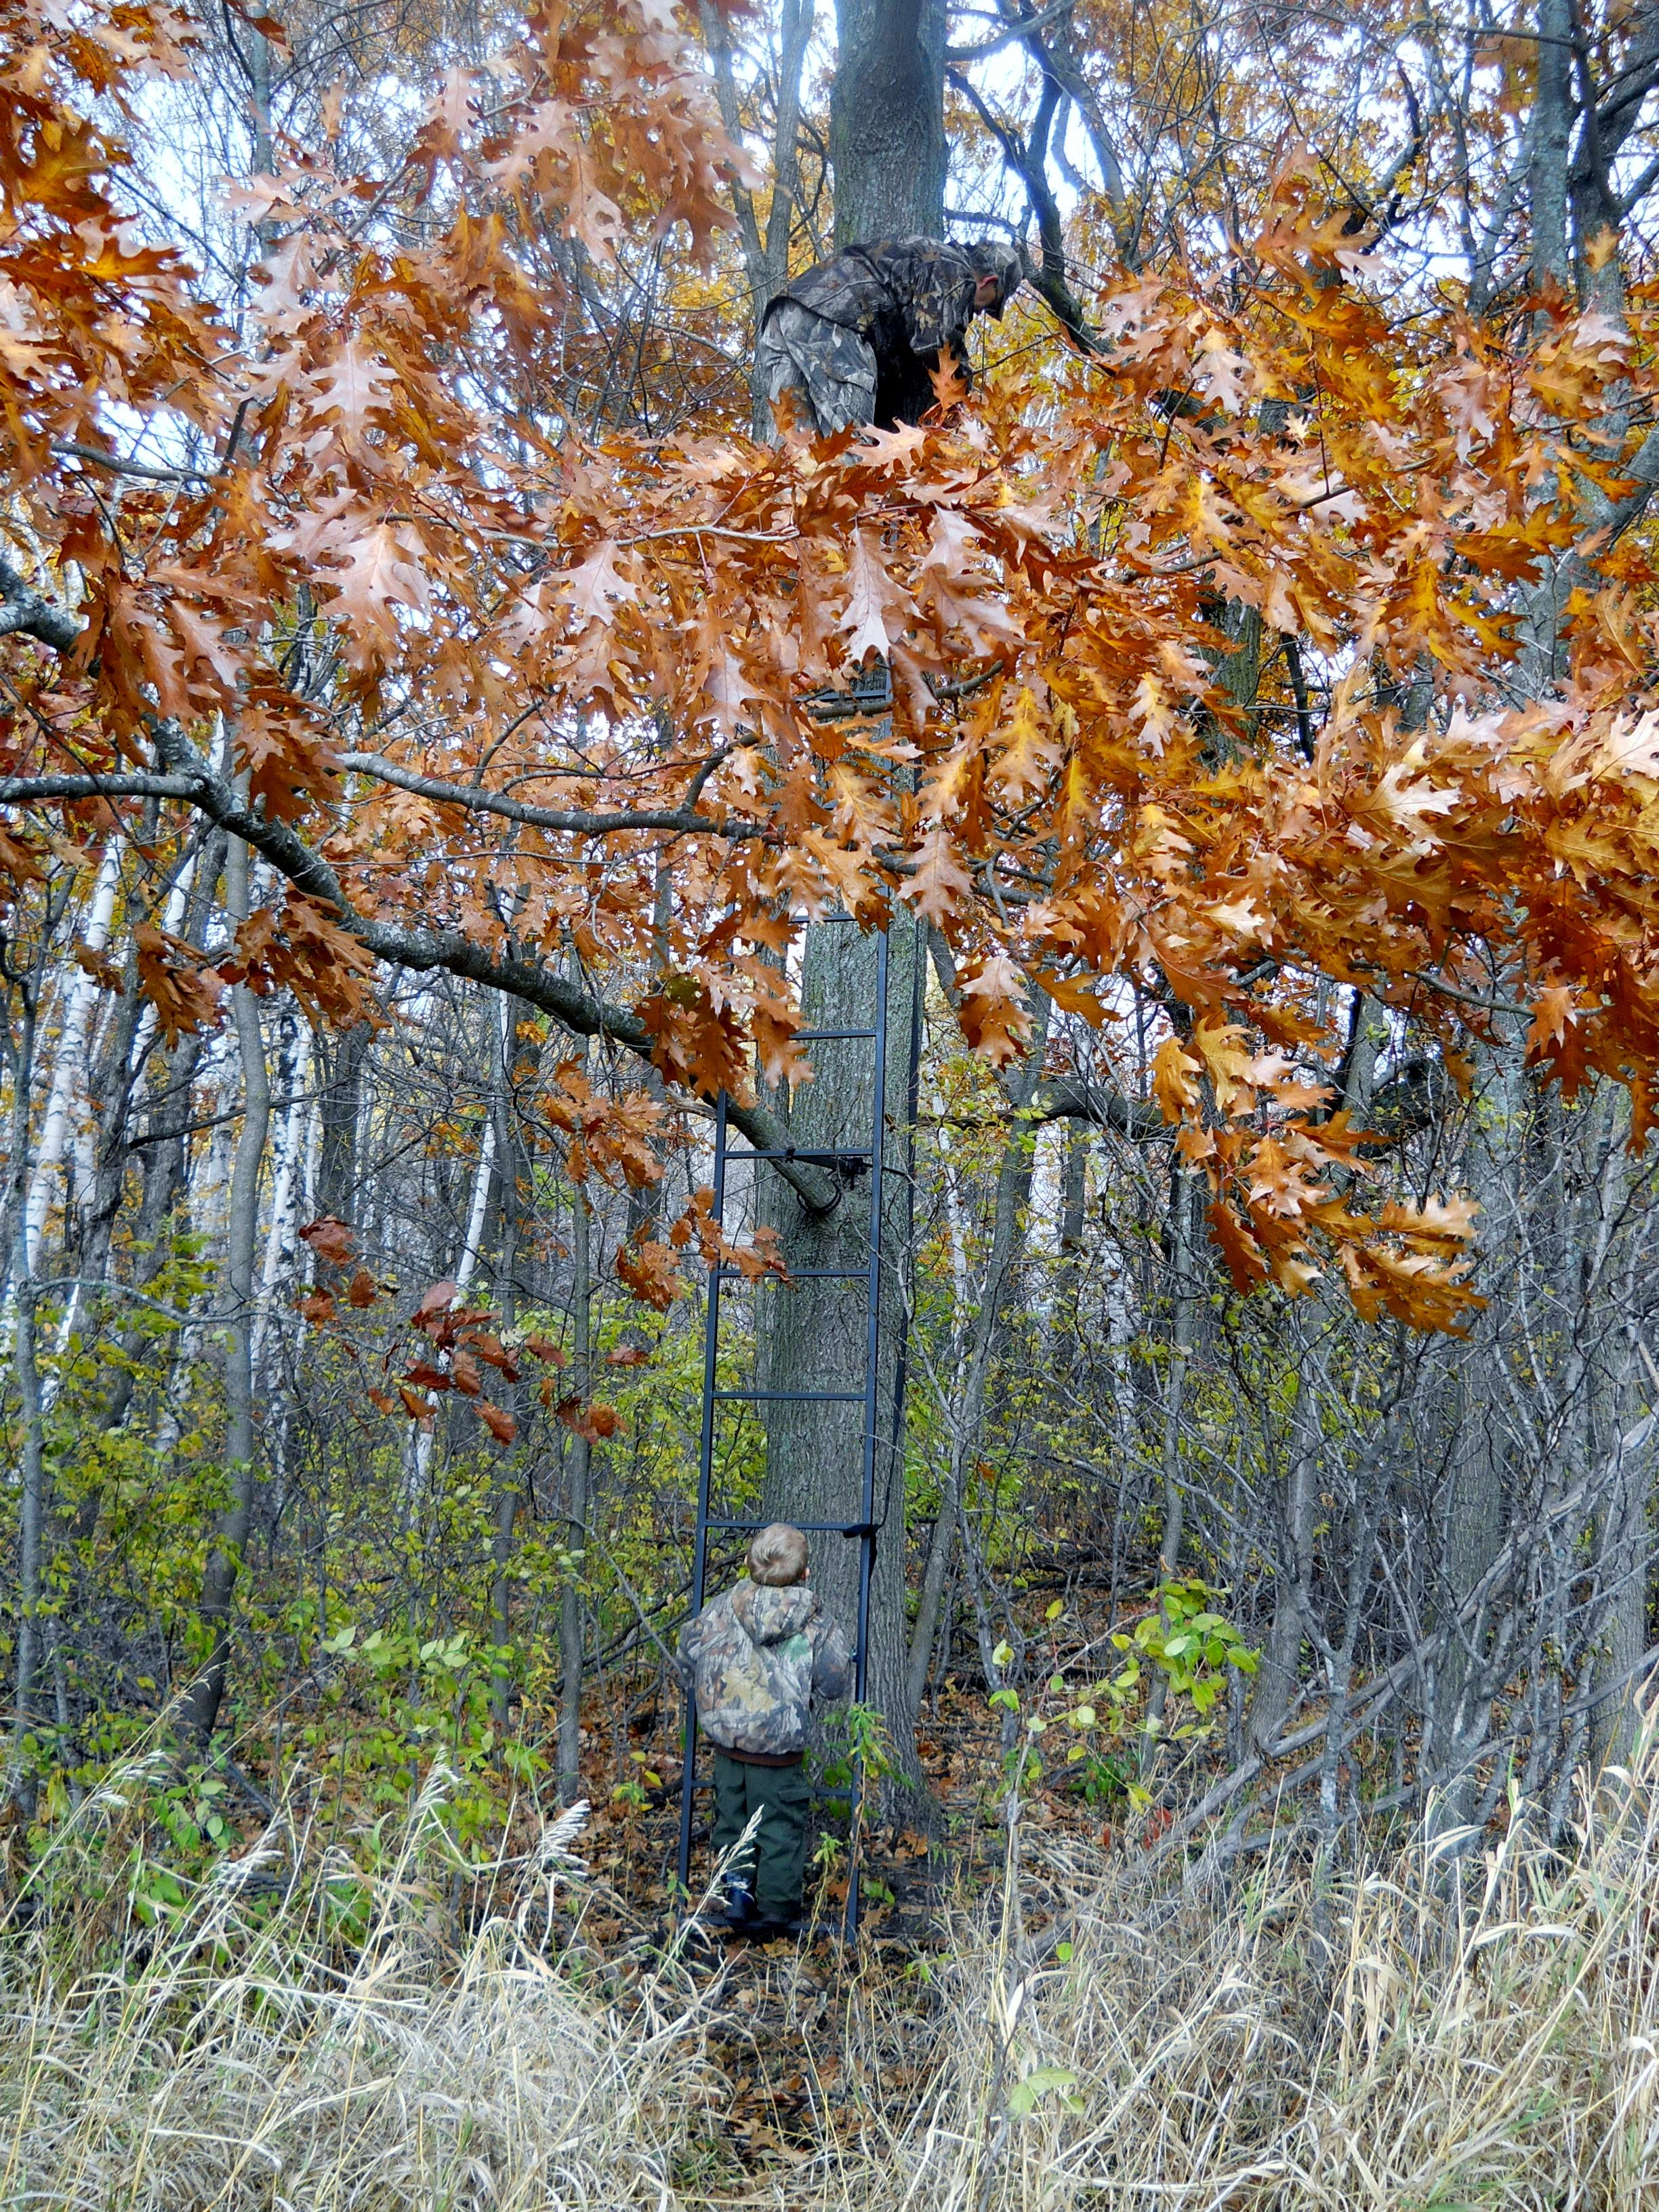 Joe helping Daddy secure the treestand for deer hunting